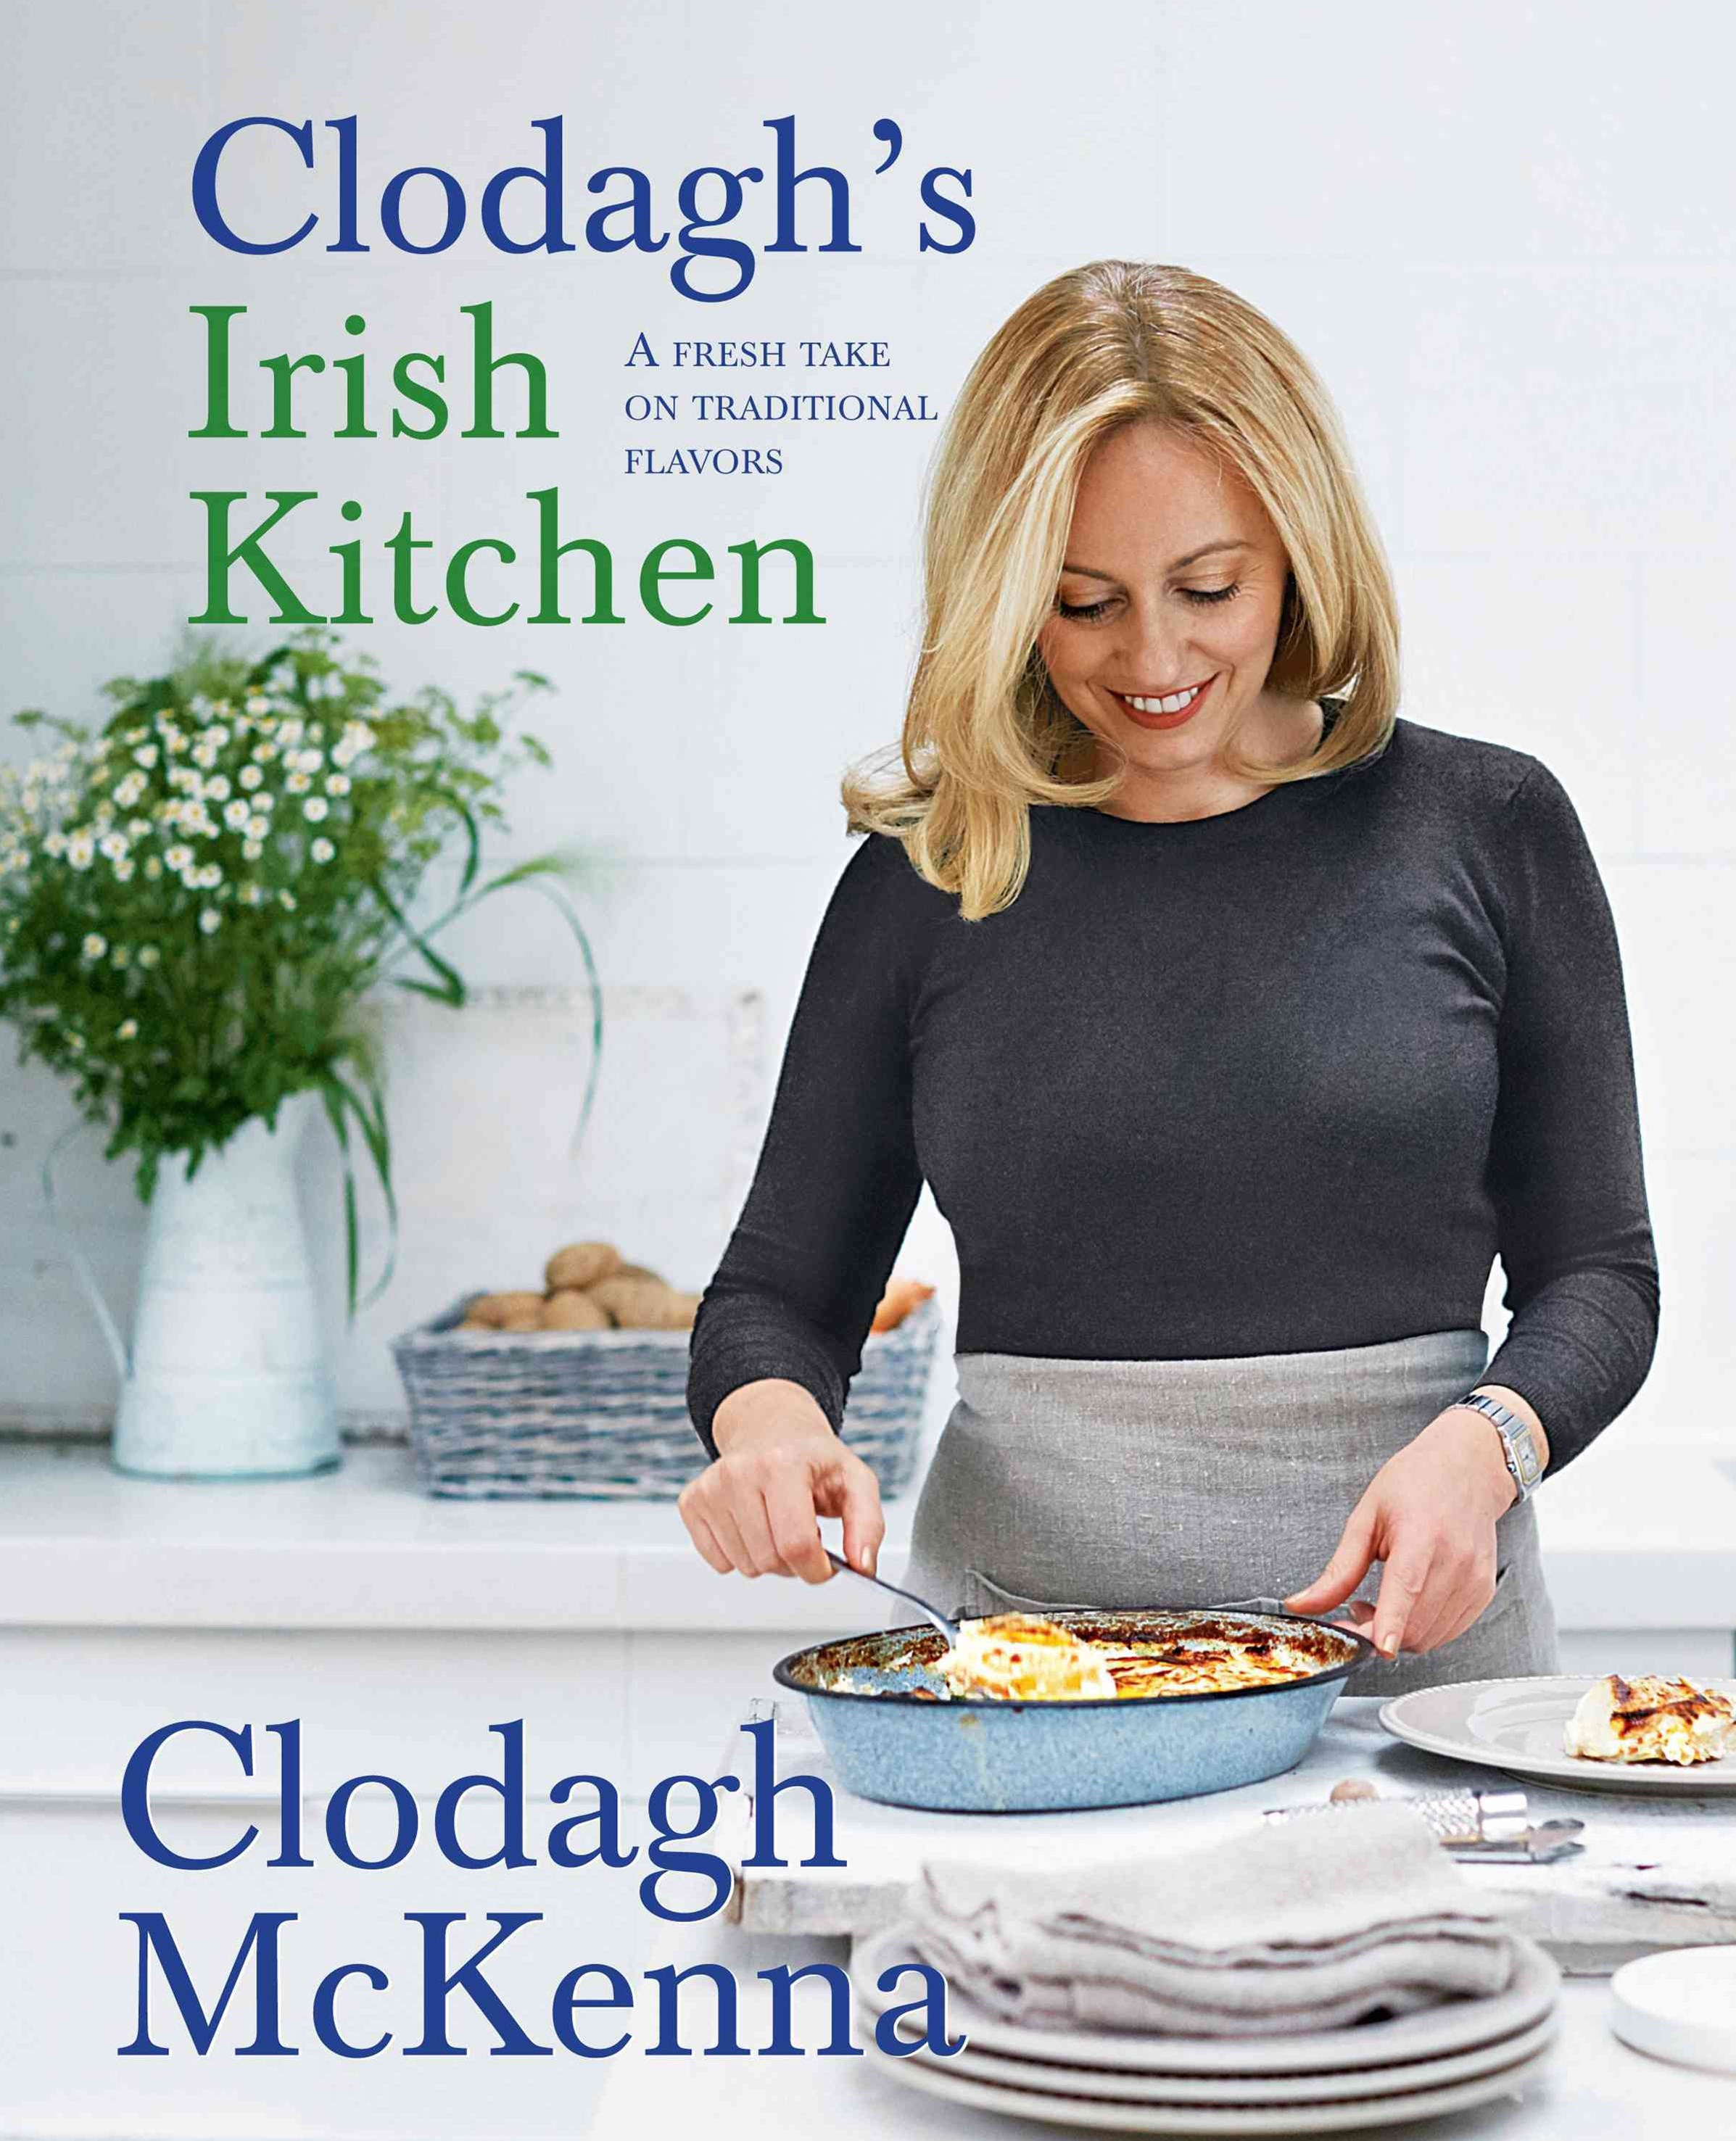 Clodagh's Irish Kitchen